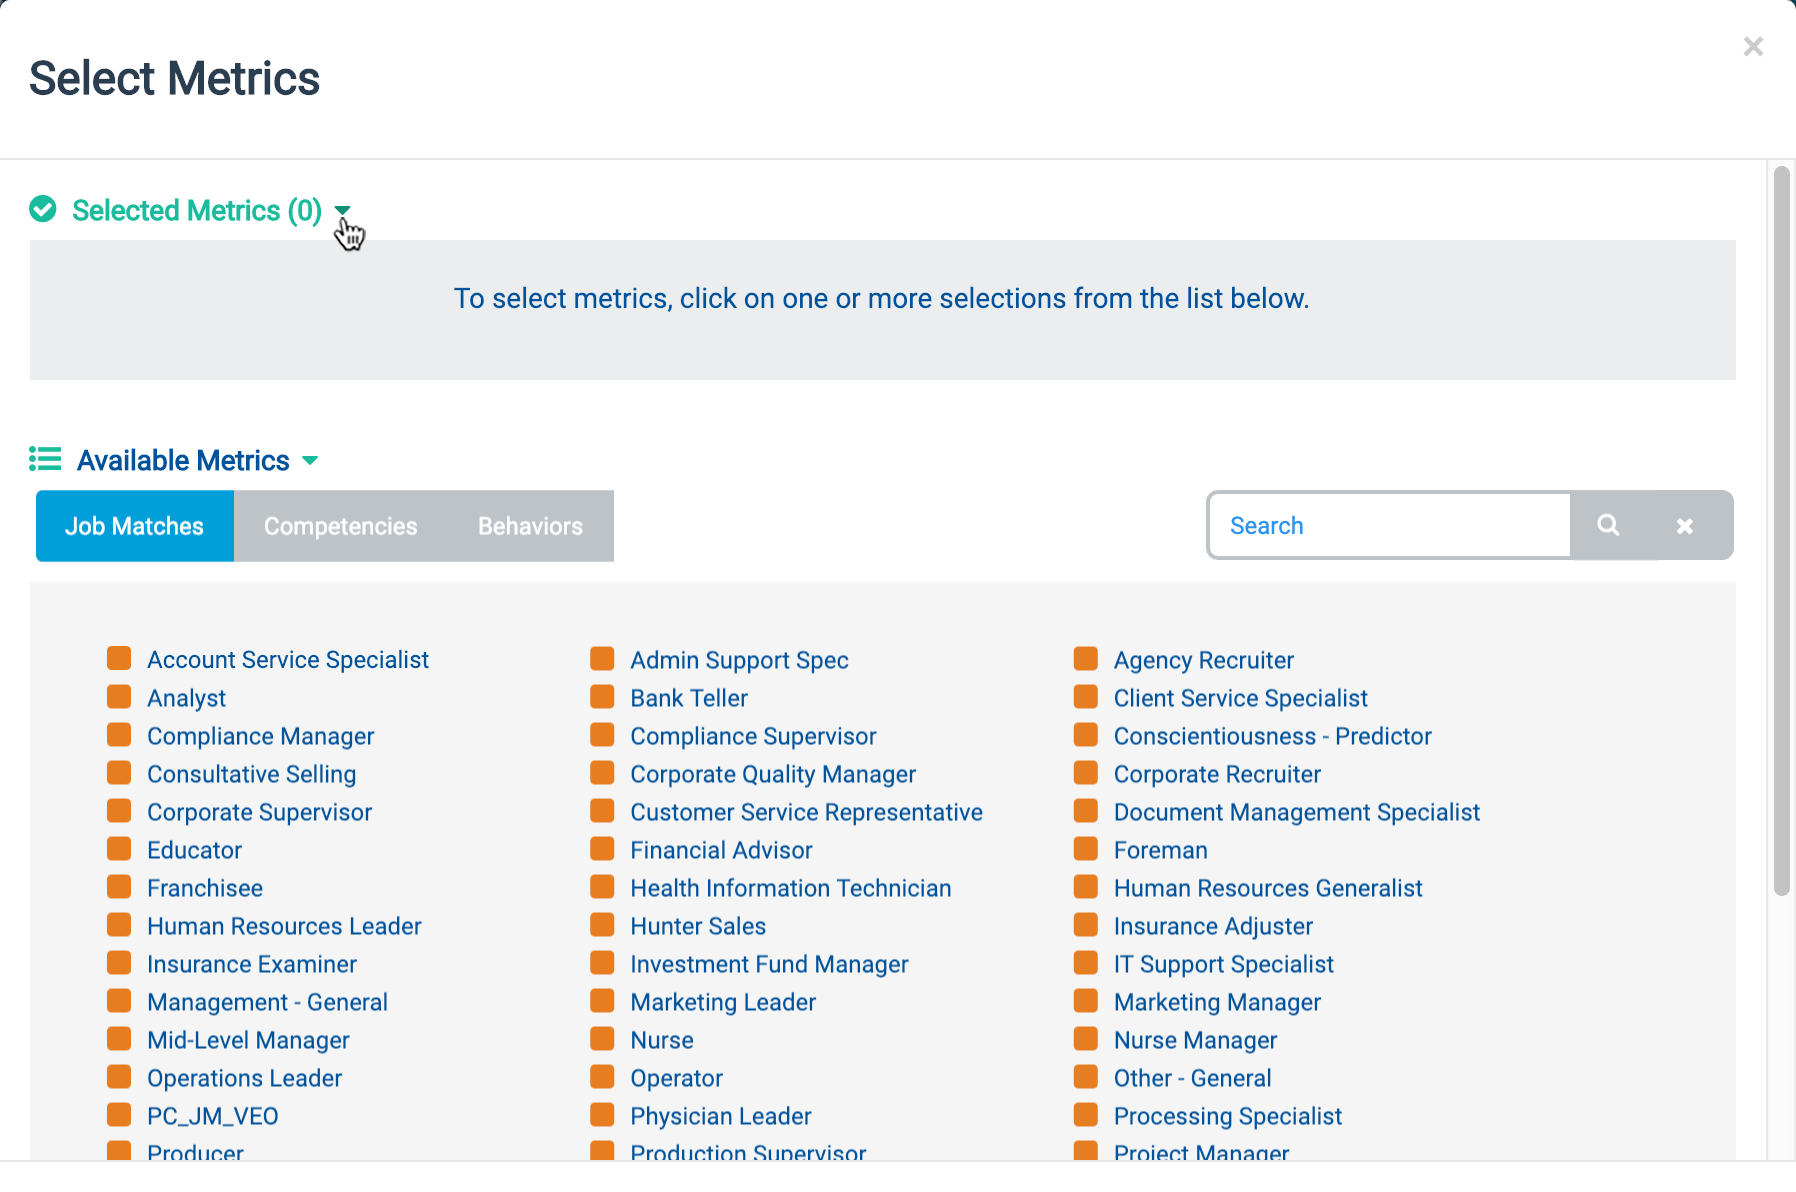 """Select Metrics"" dialog with lists of Job Matches, Competencies, and Behaviors"